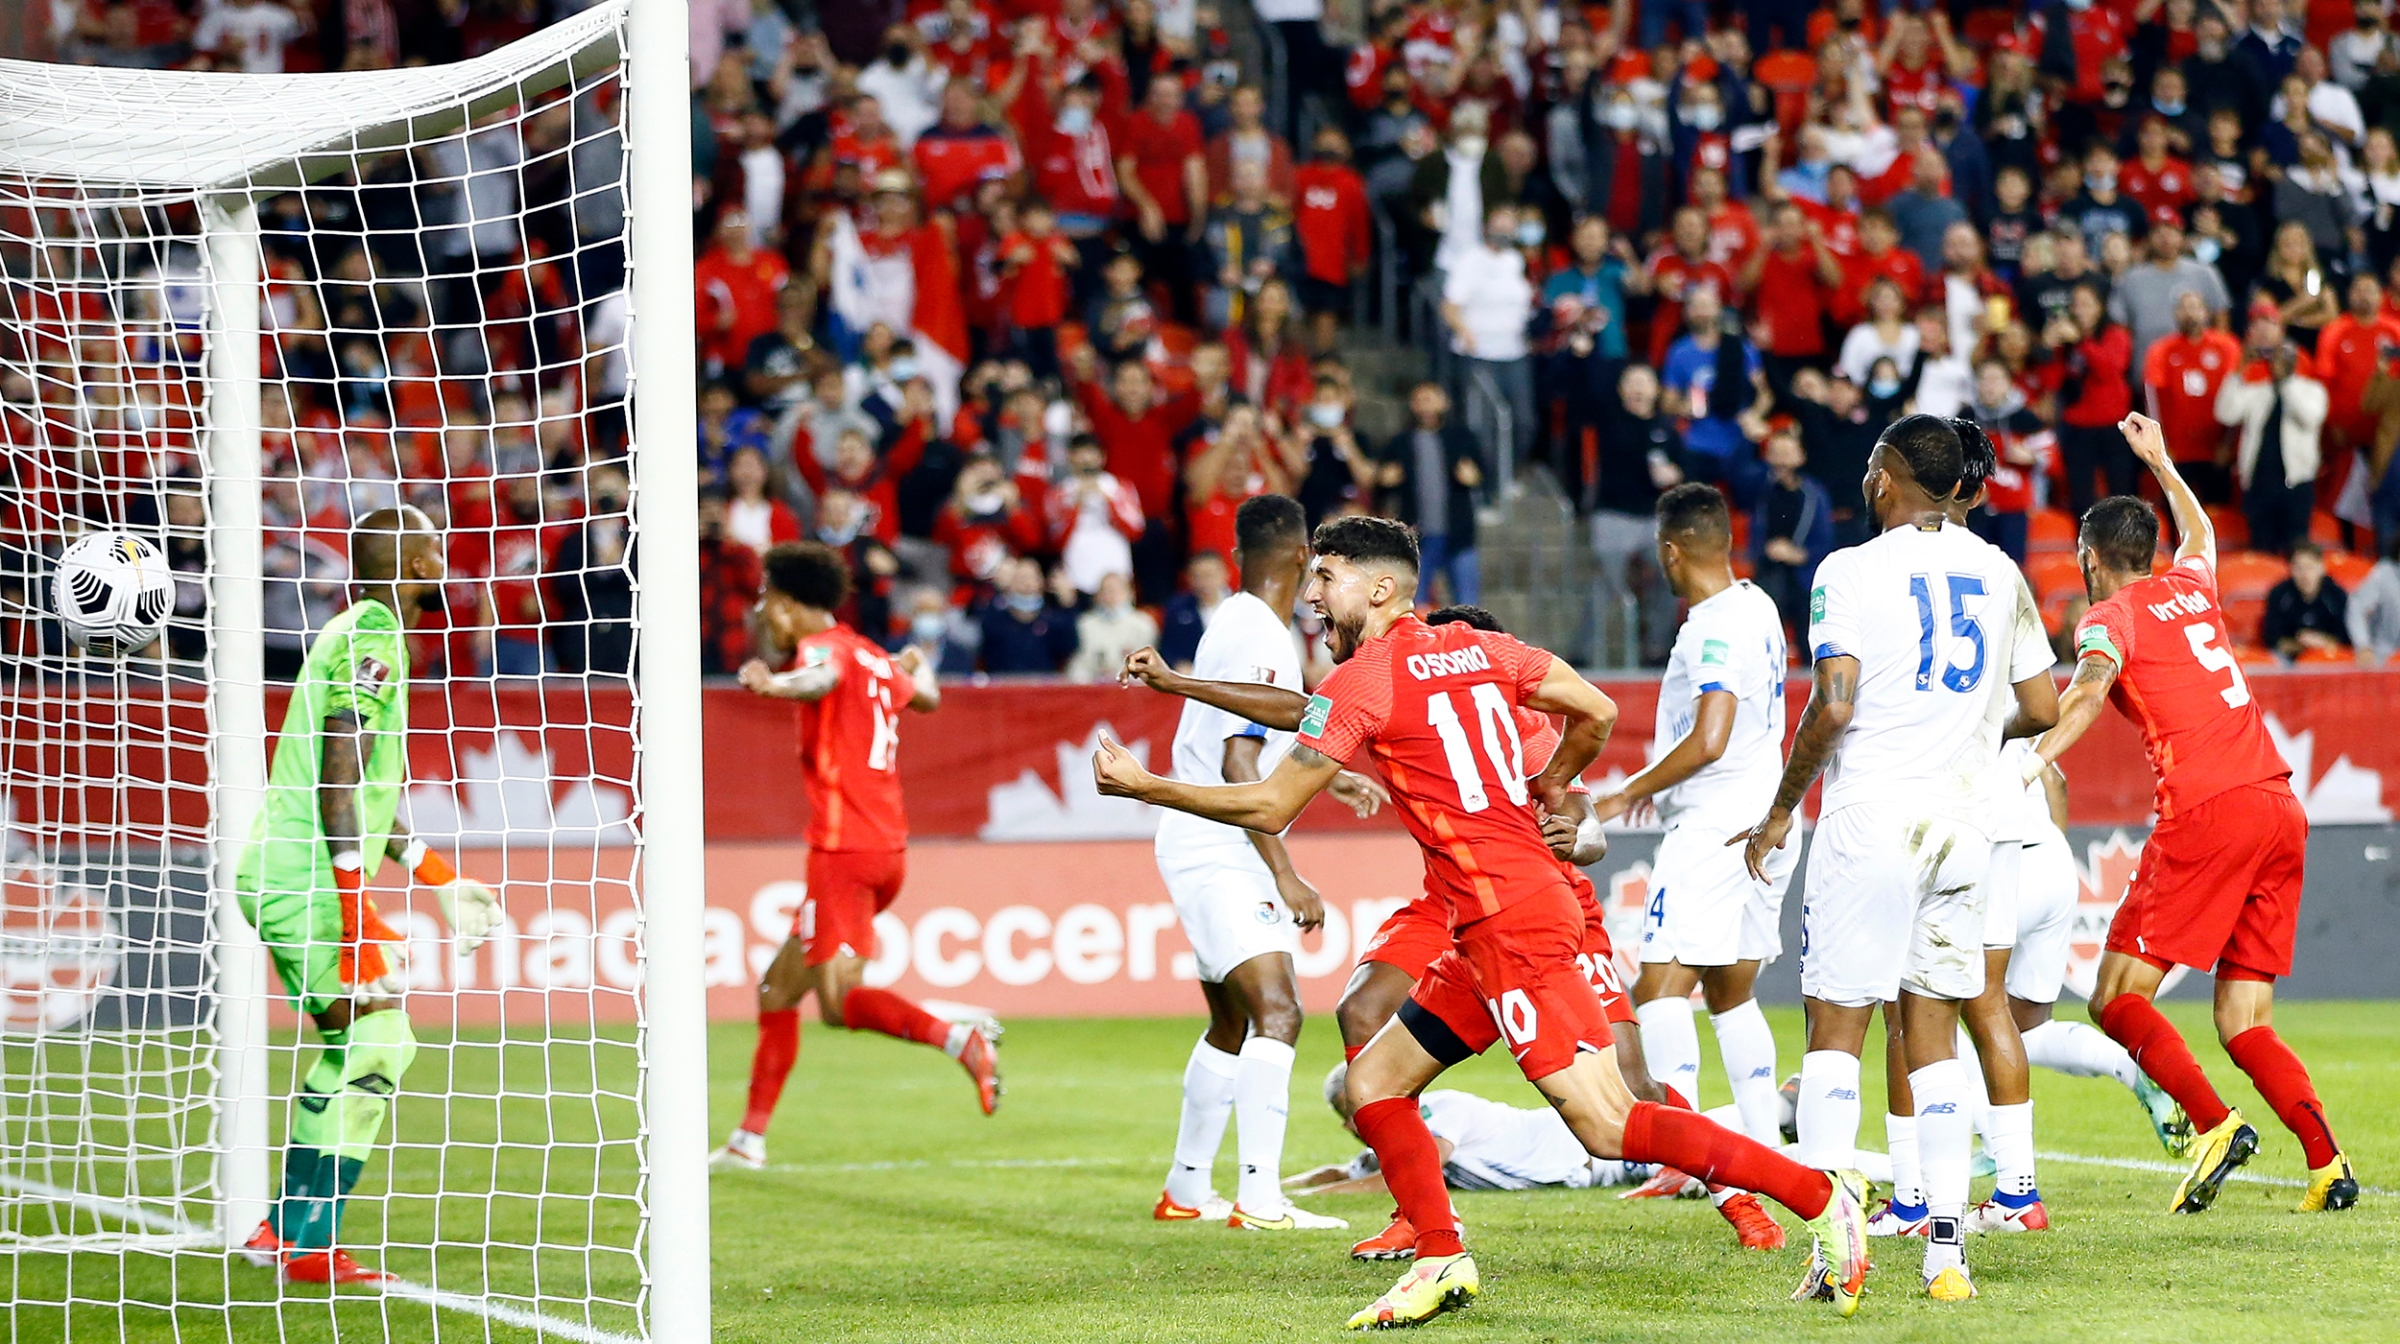 Jonathan Osorio #10 of Canada celebrates a goal by Tajon Buchanan #11 during a 2022 World Cup Qualifying match against Panama at BMO Field on October 13, 2021 in Toronto, Ontario, Canada.